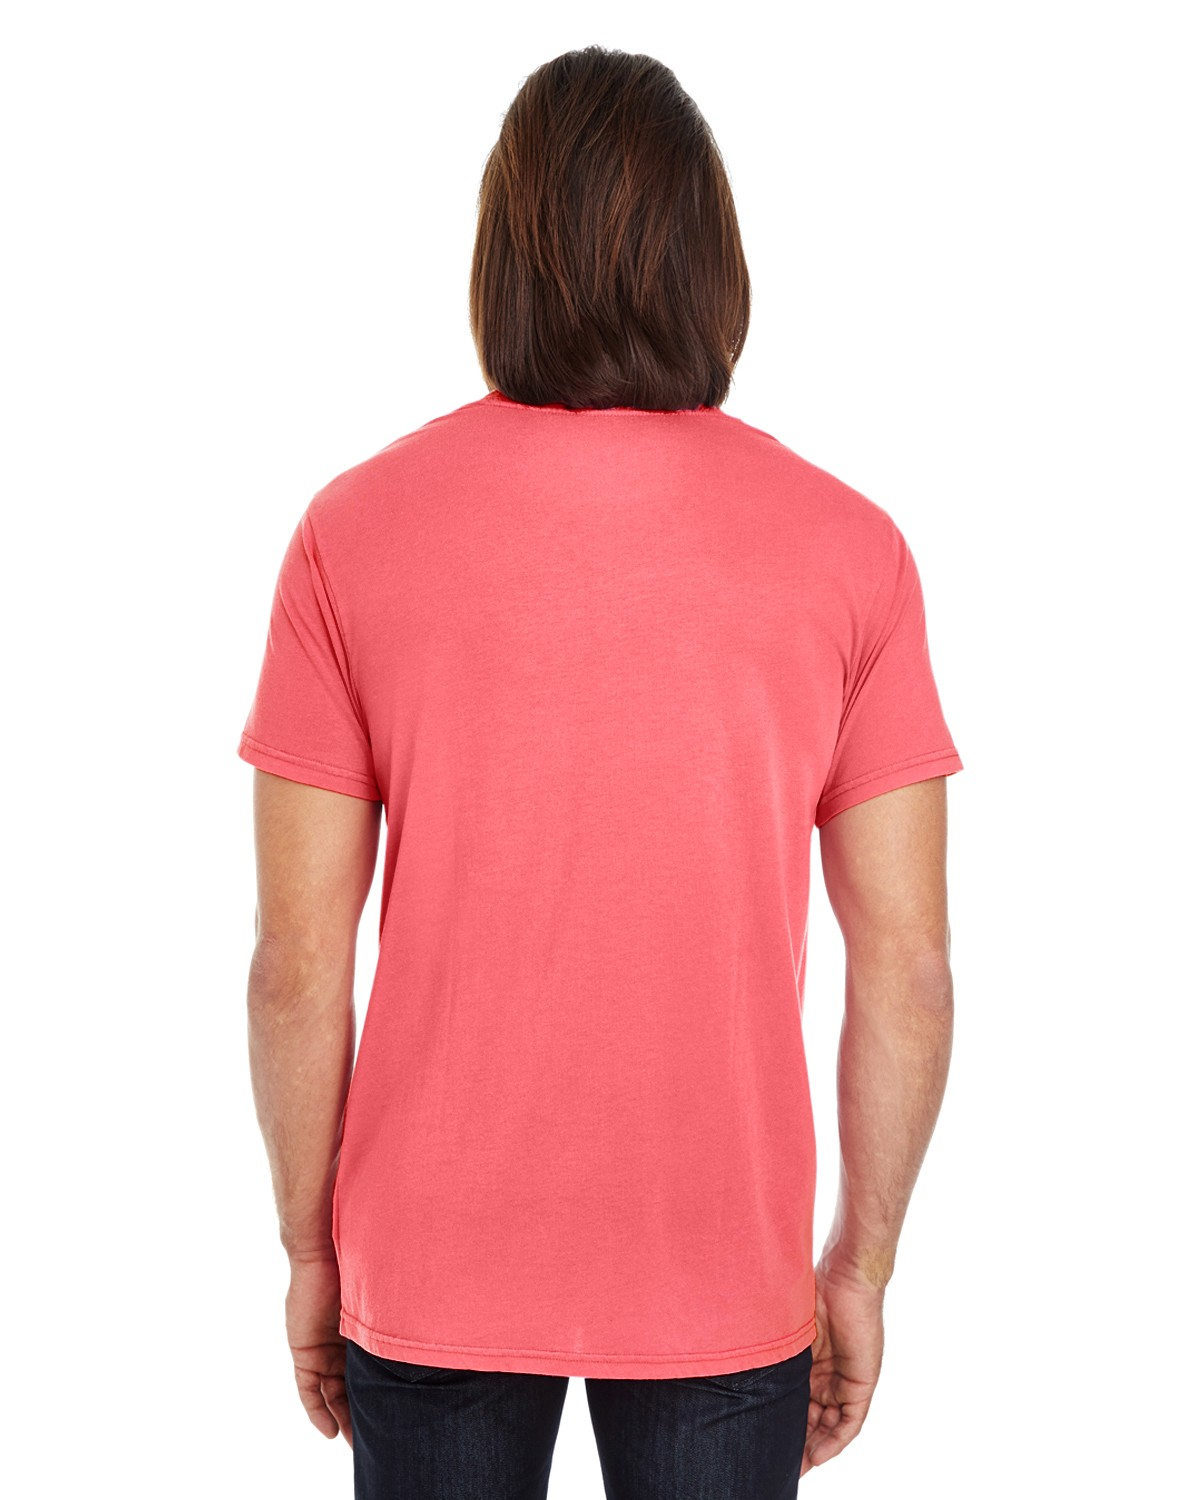 130A Threadfast Apparel RED